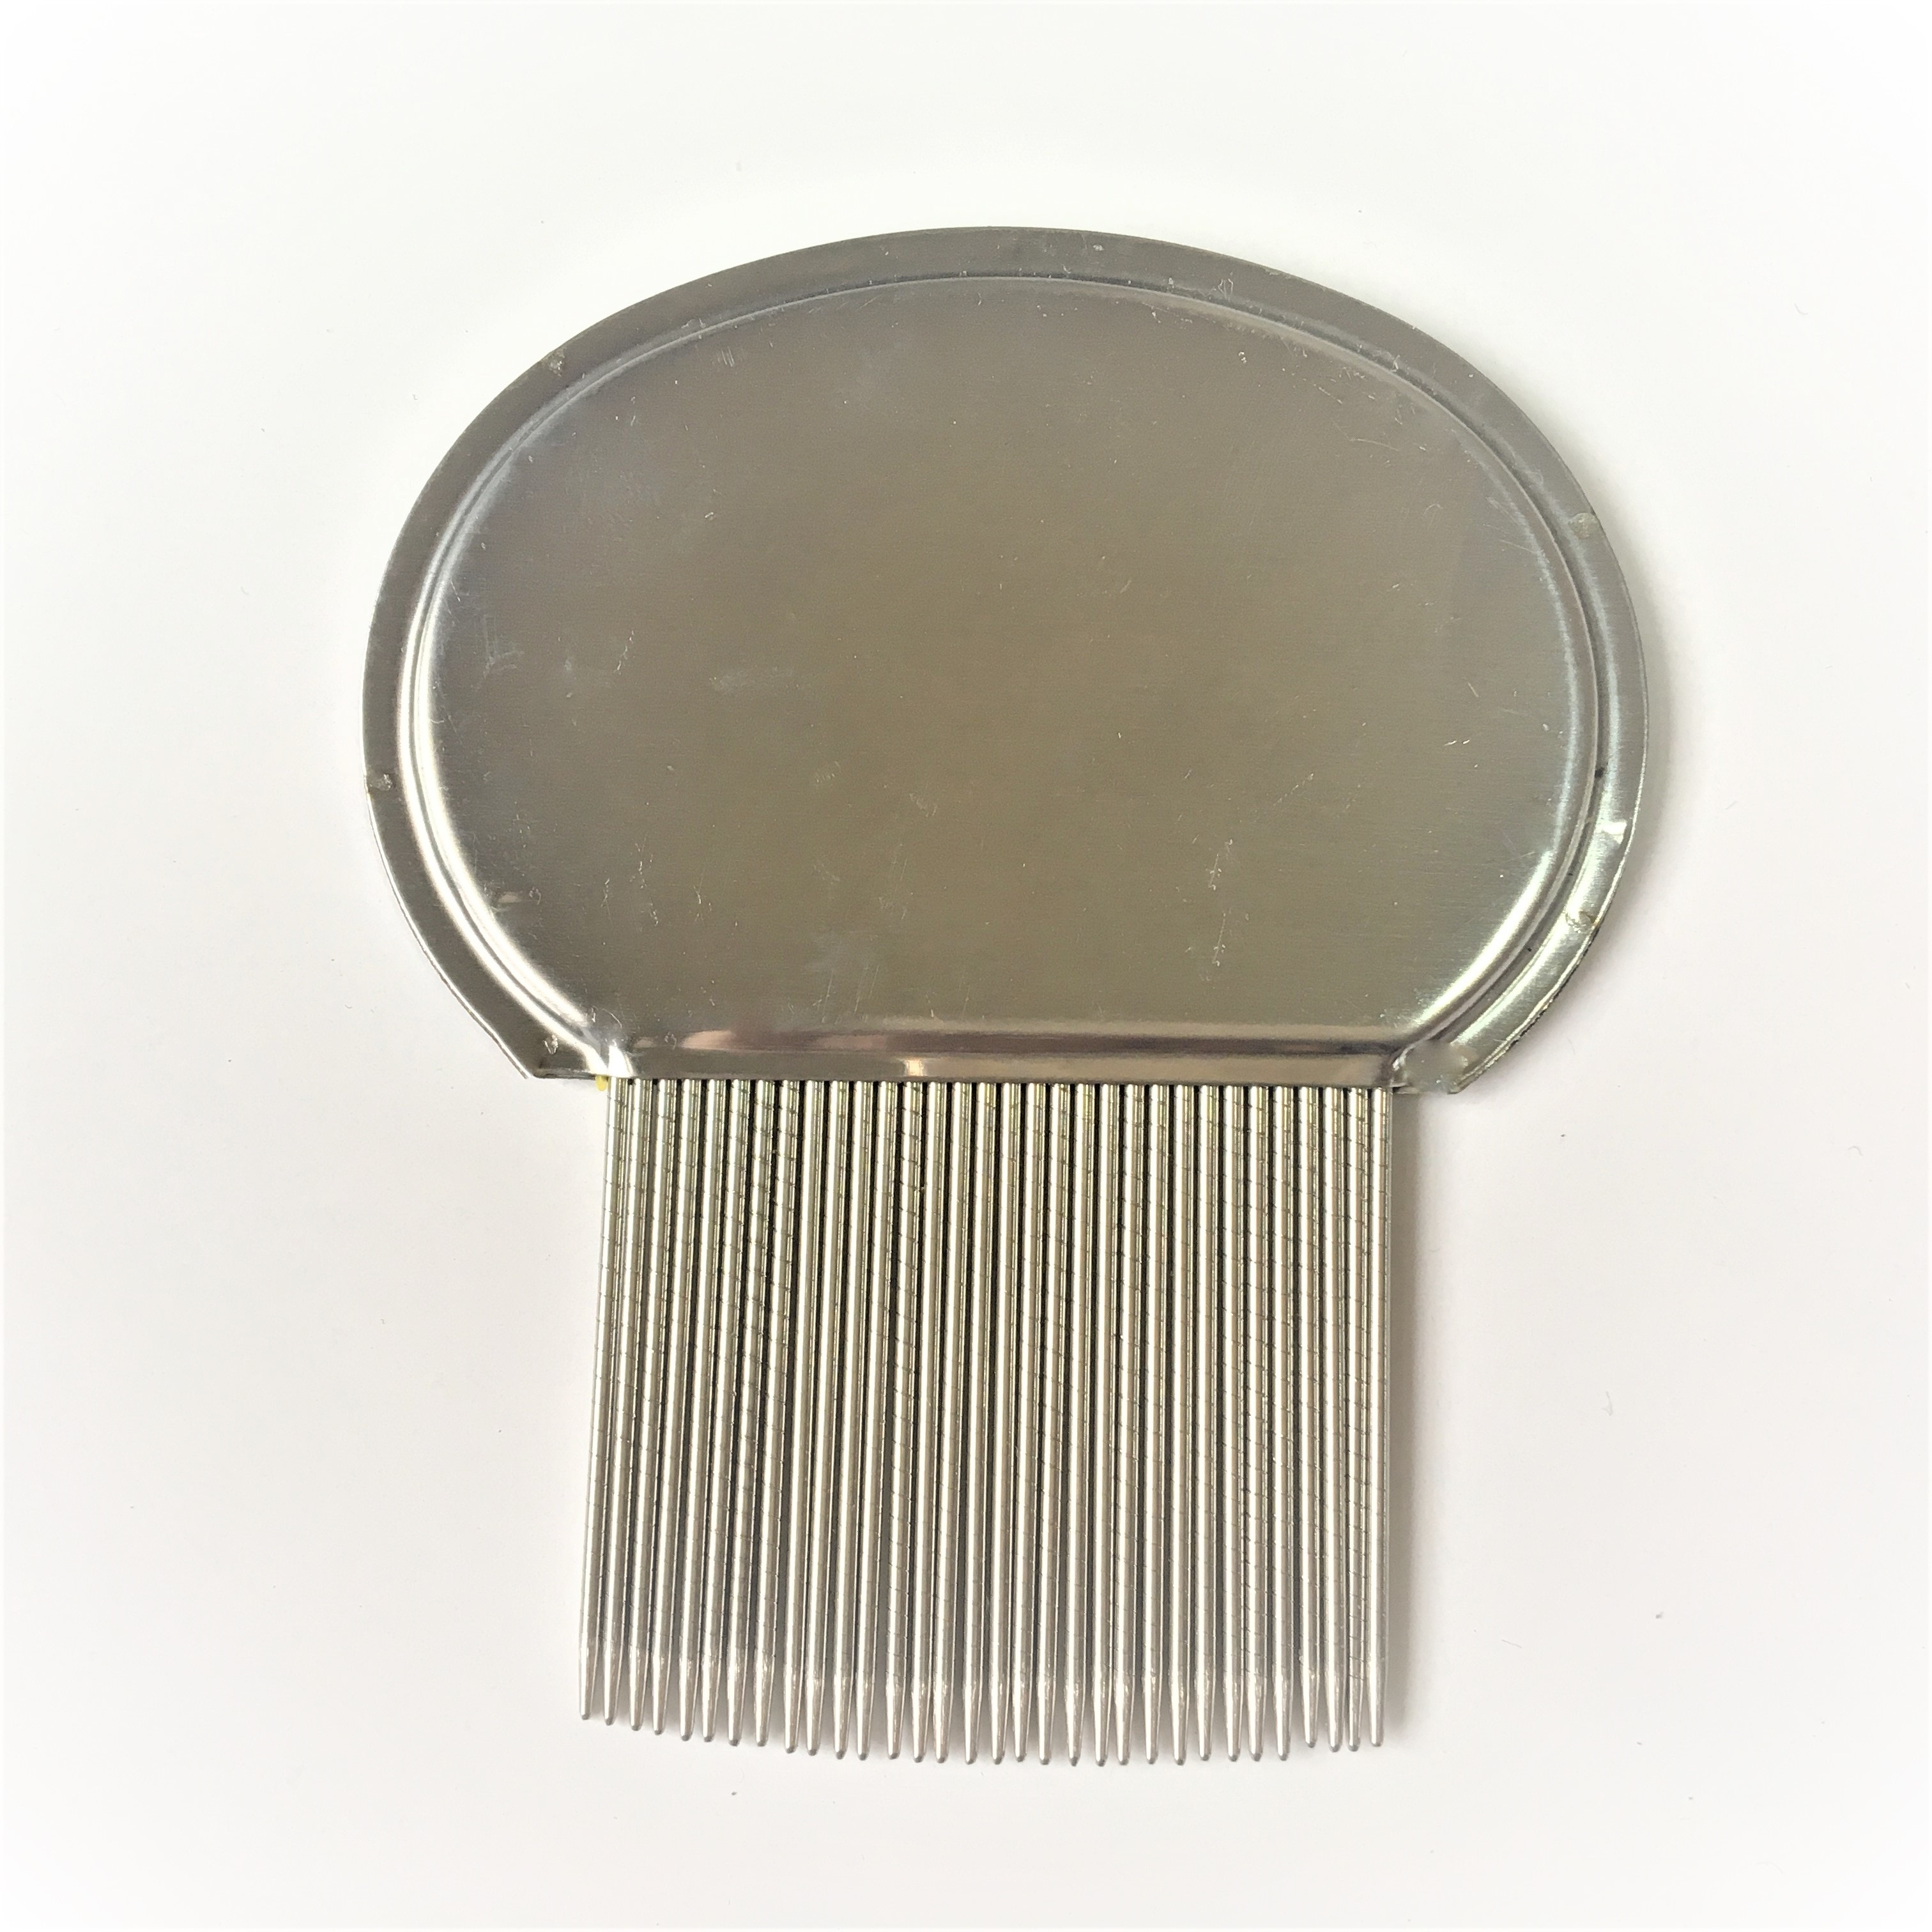 Clean <strong>hair</strong> tools stainless <strong>steel</strong> <strong>comb</strong>